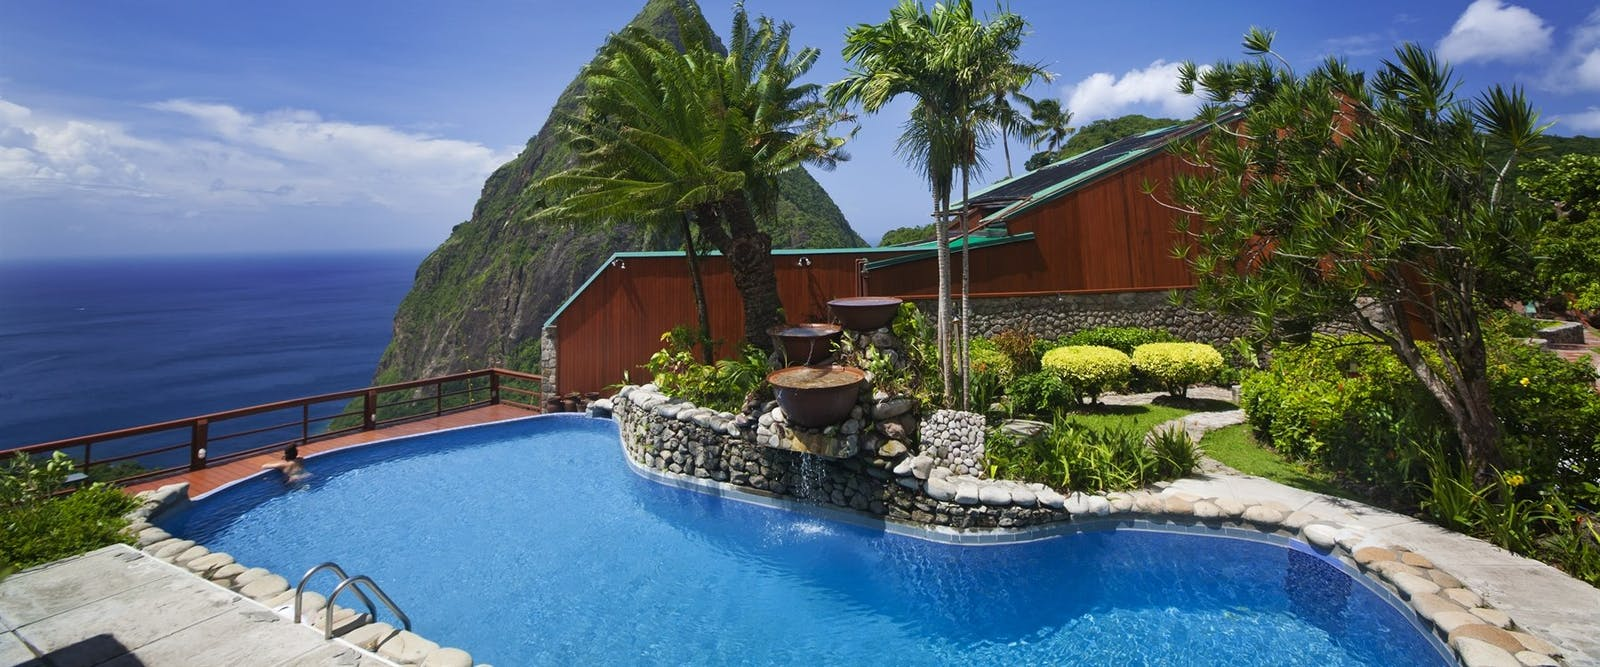 Main Pool at Ladera, St Lucia